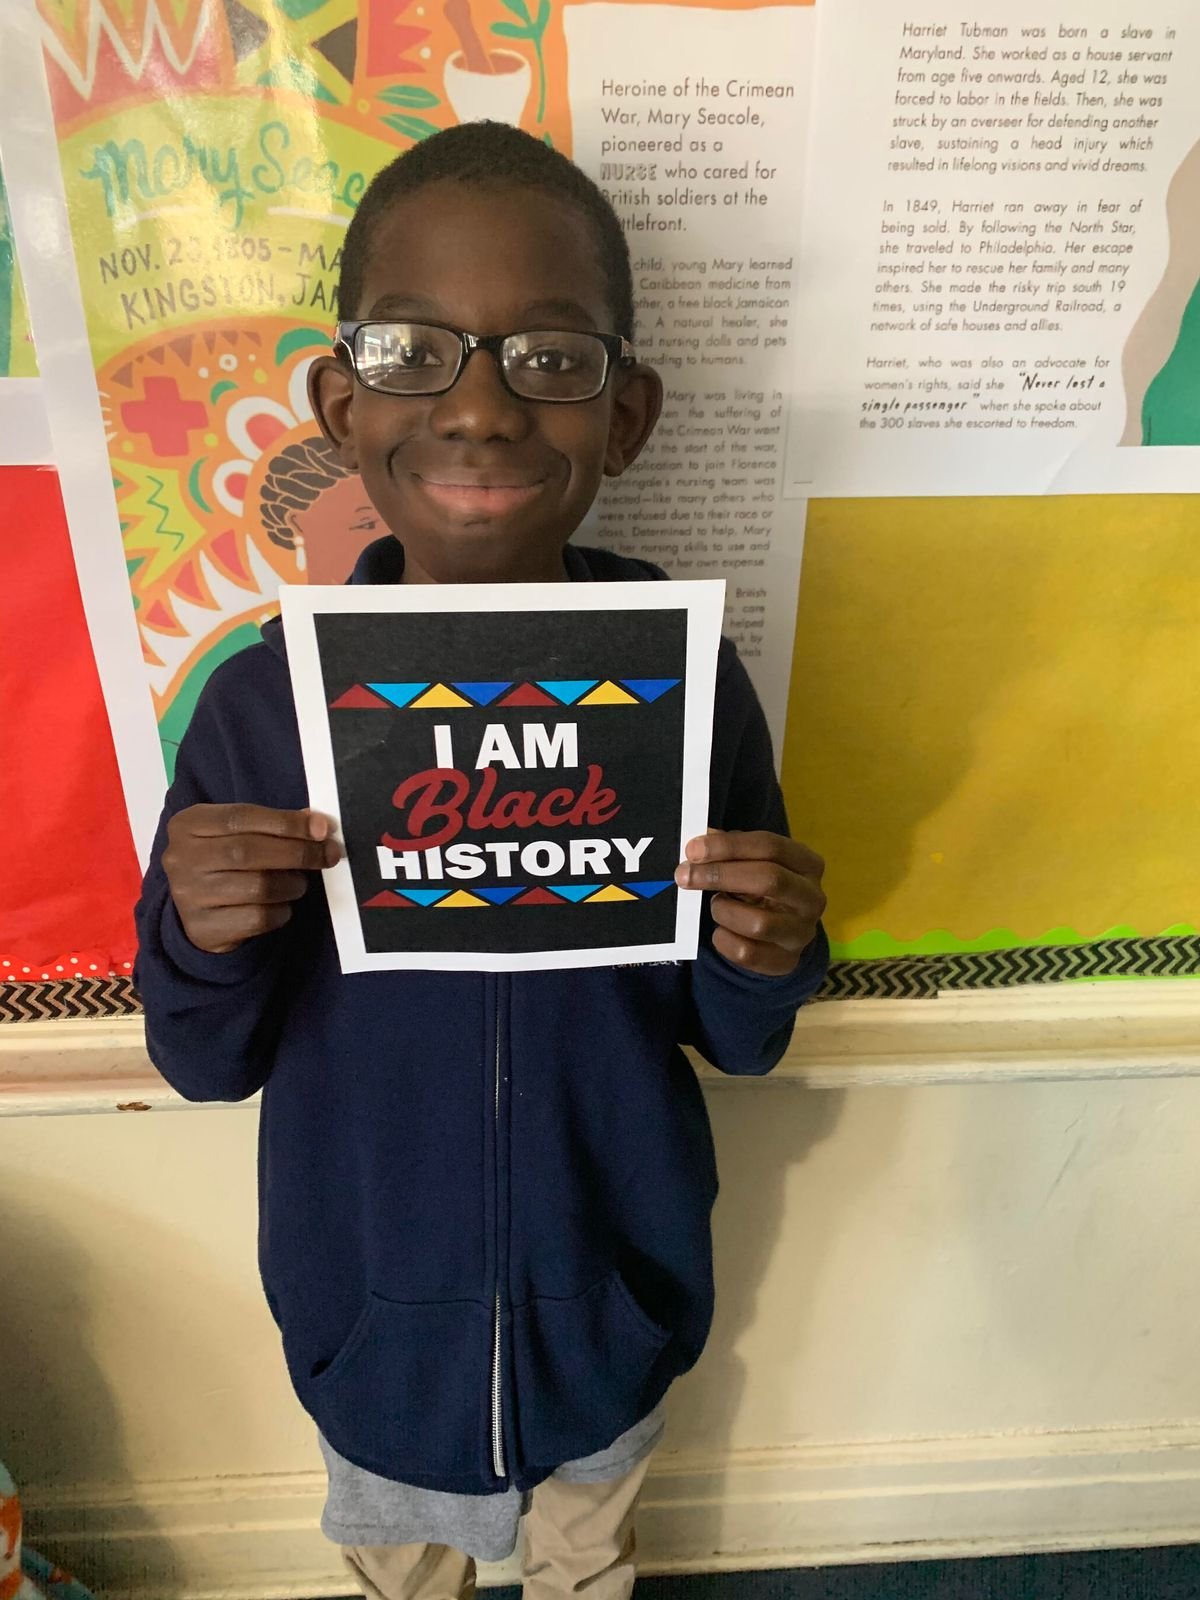 """Abdul Haq-Adome, a sixth-grade student smiling and holding a sign that reads """"I am Black history."""""""